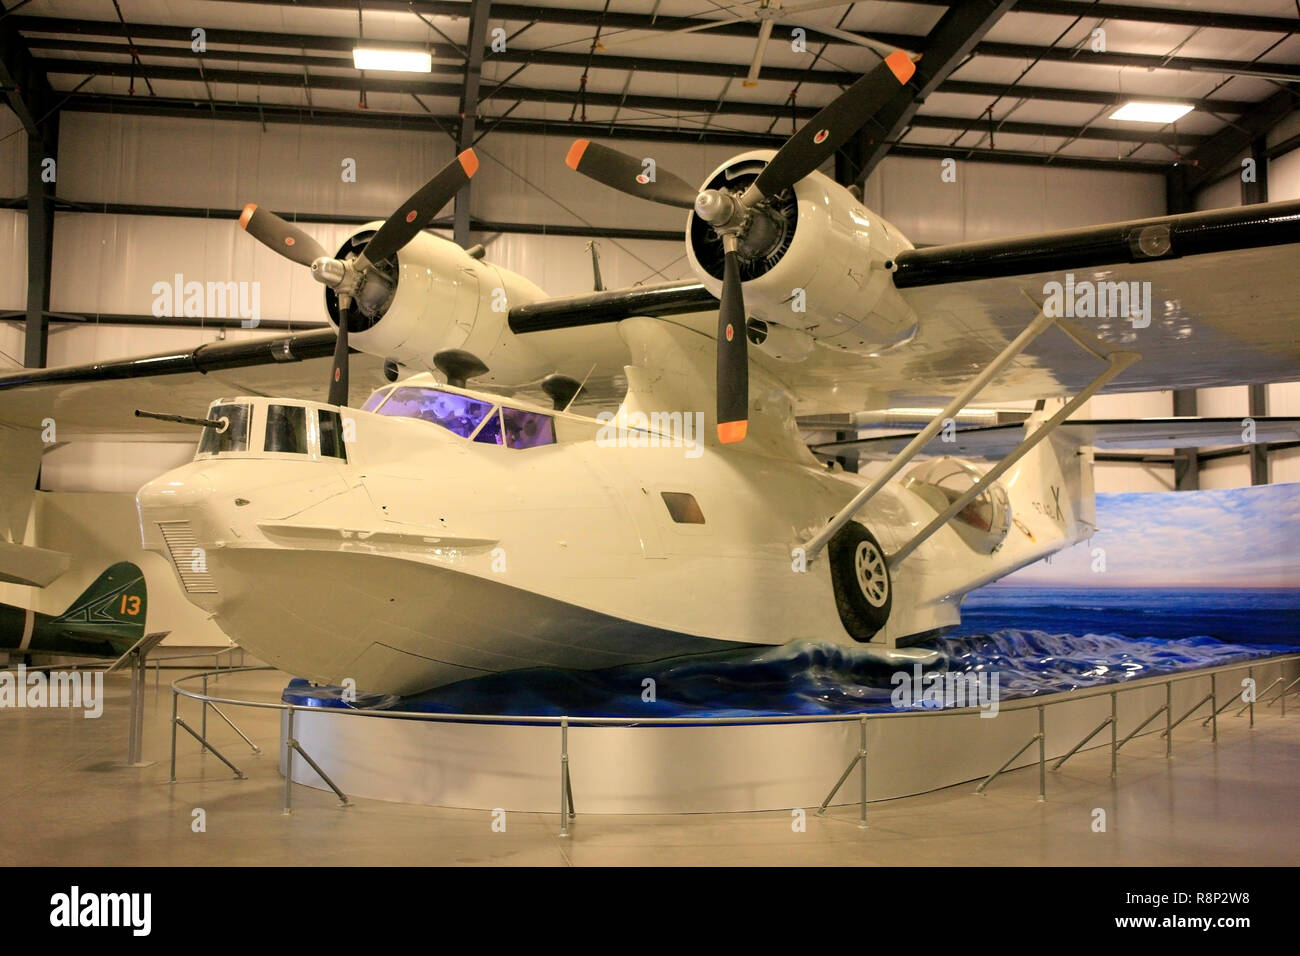 WW2 Consolidated PBY Catalina flying boat plane on display at the Pima Air & Space Museum in Tucson, AZ Stock Photo